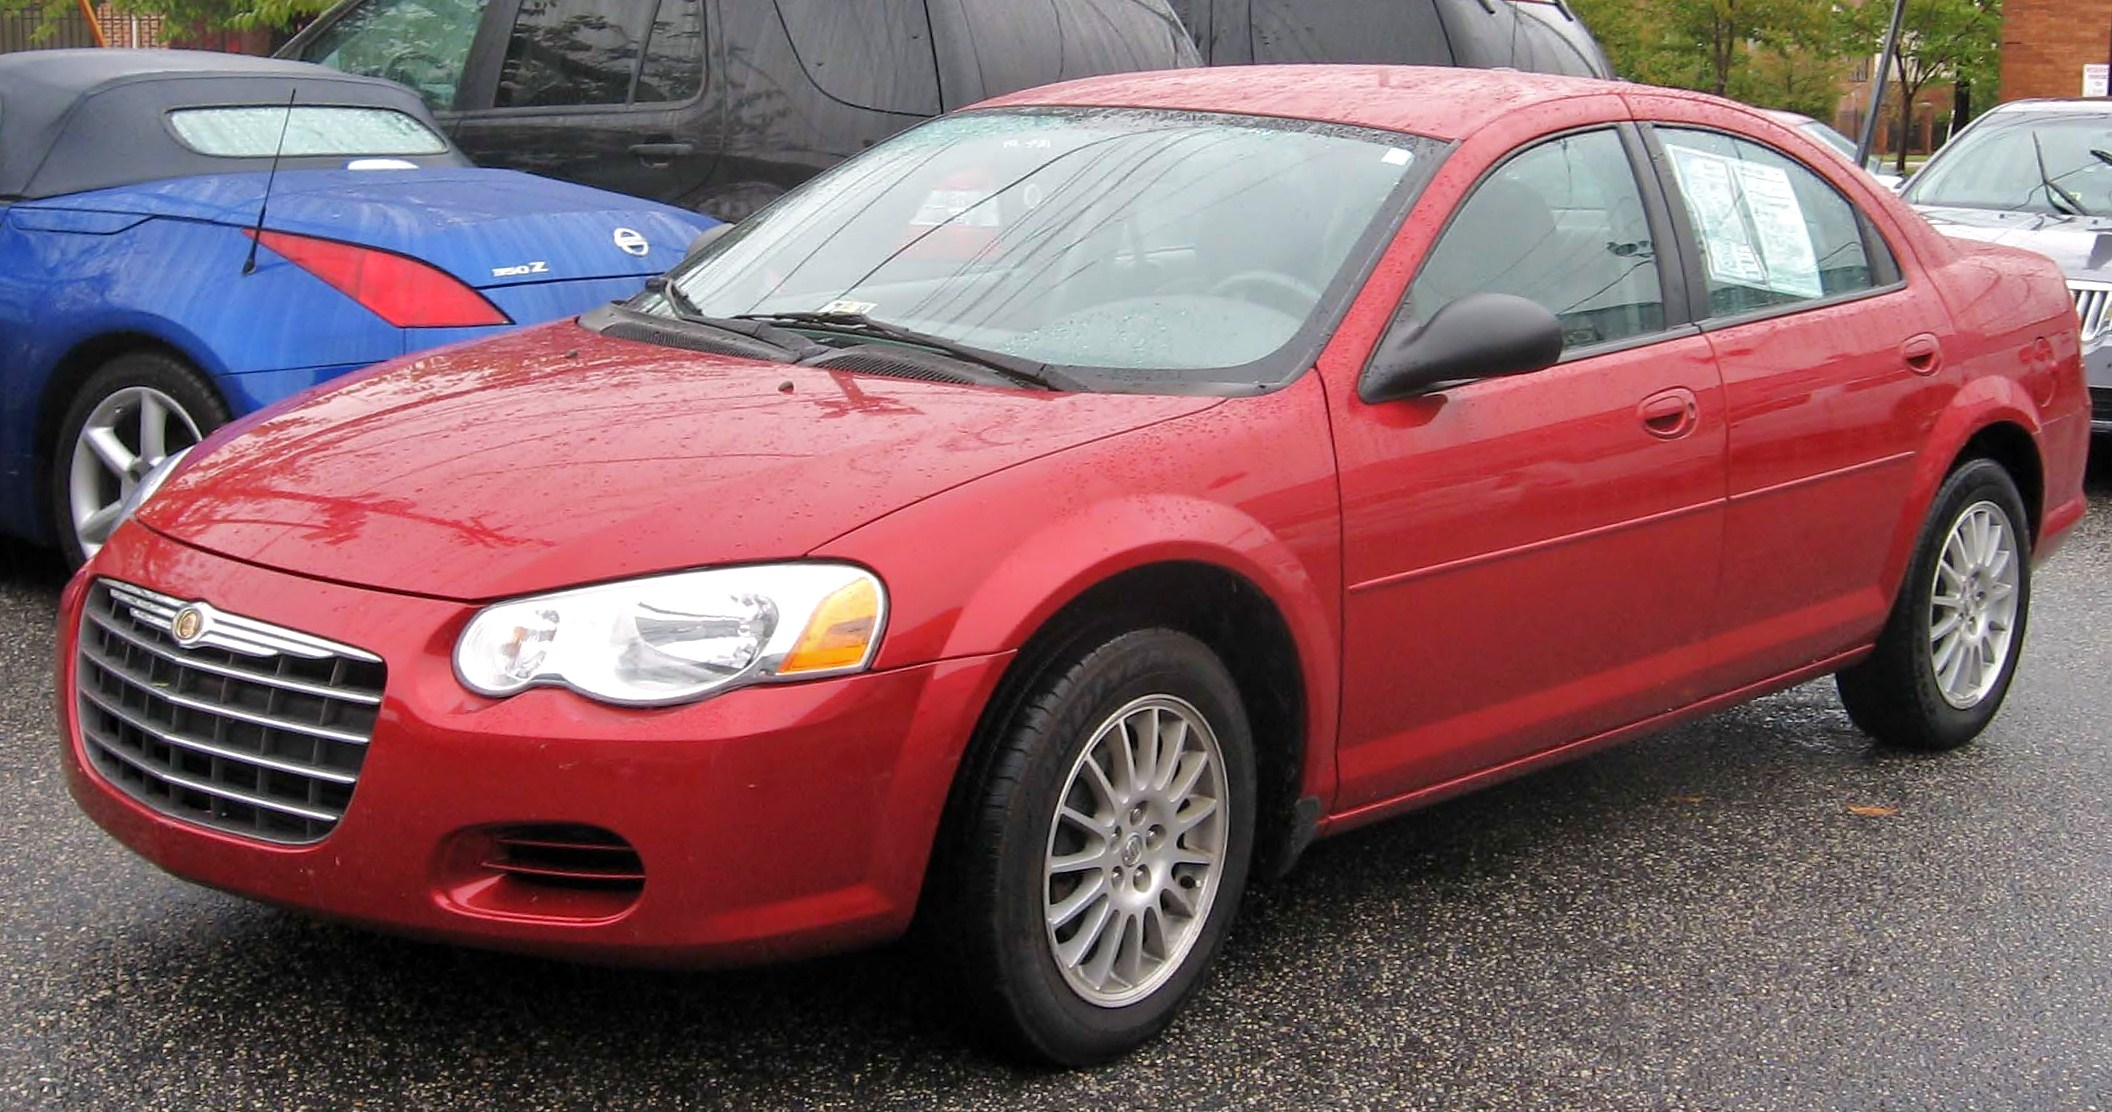 2006 Chrysler Sebring #6